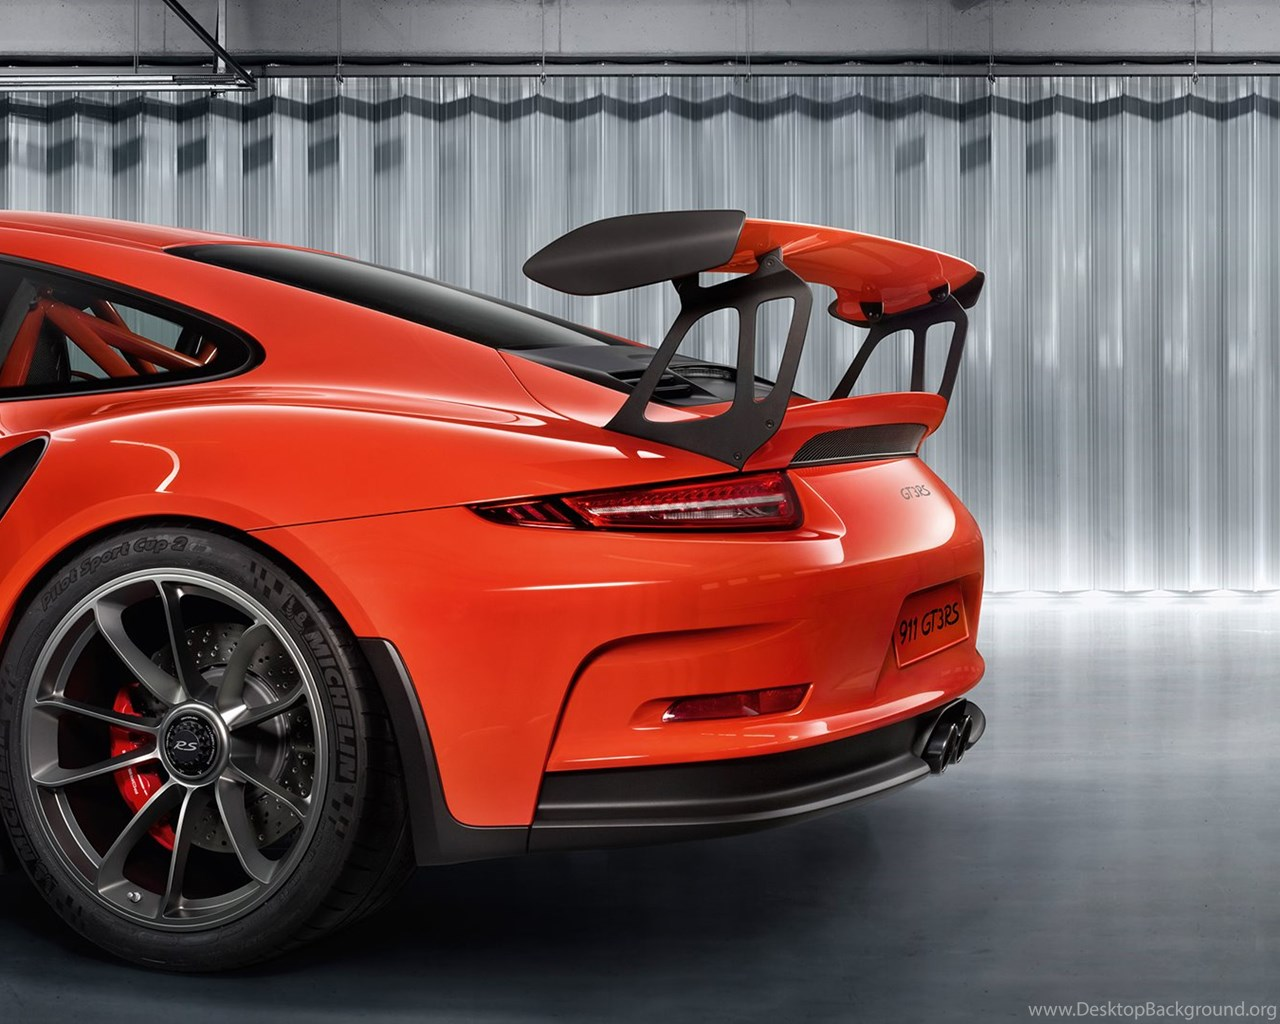 Porsche Gt3 Rs Wallpapers 1920x1080 Images Desktop Background